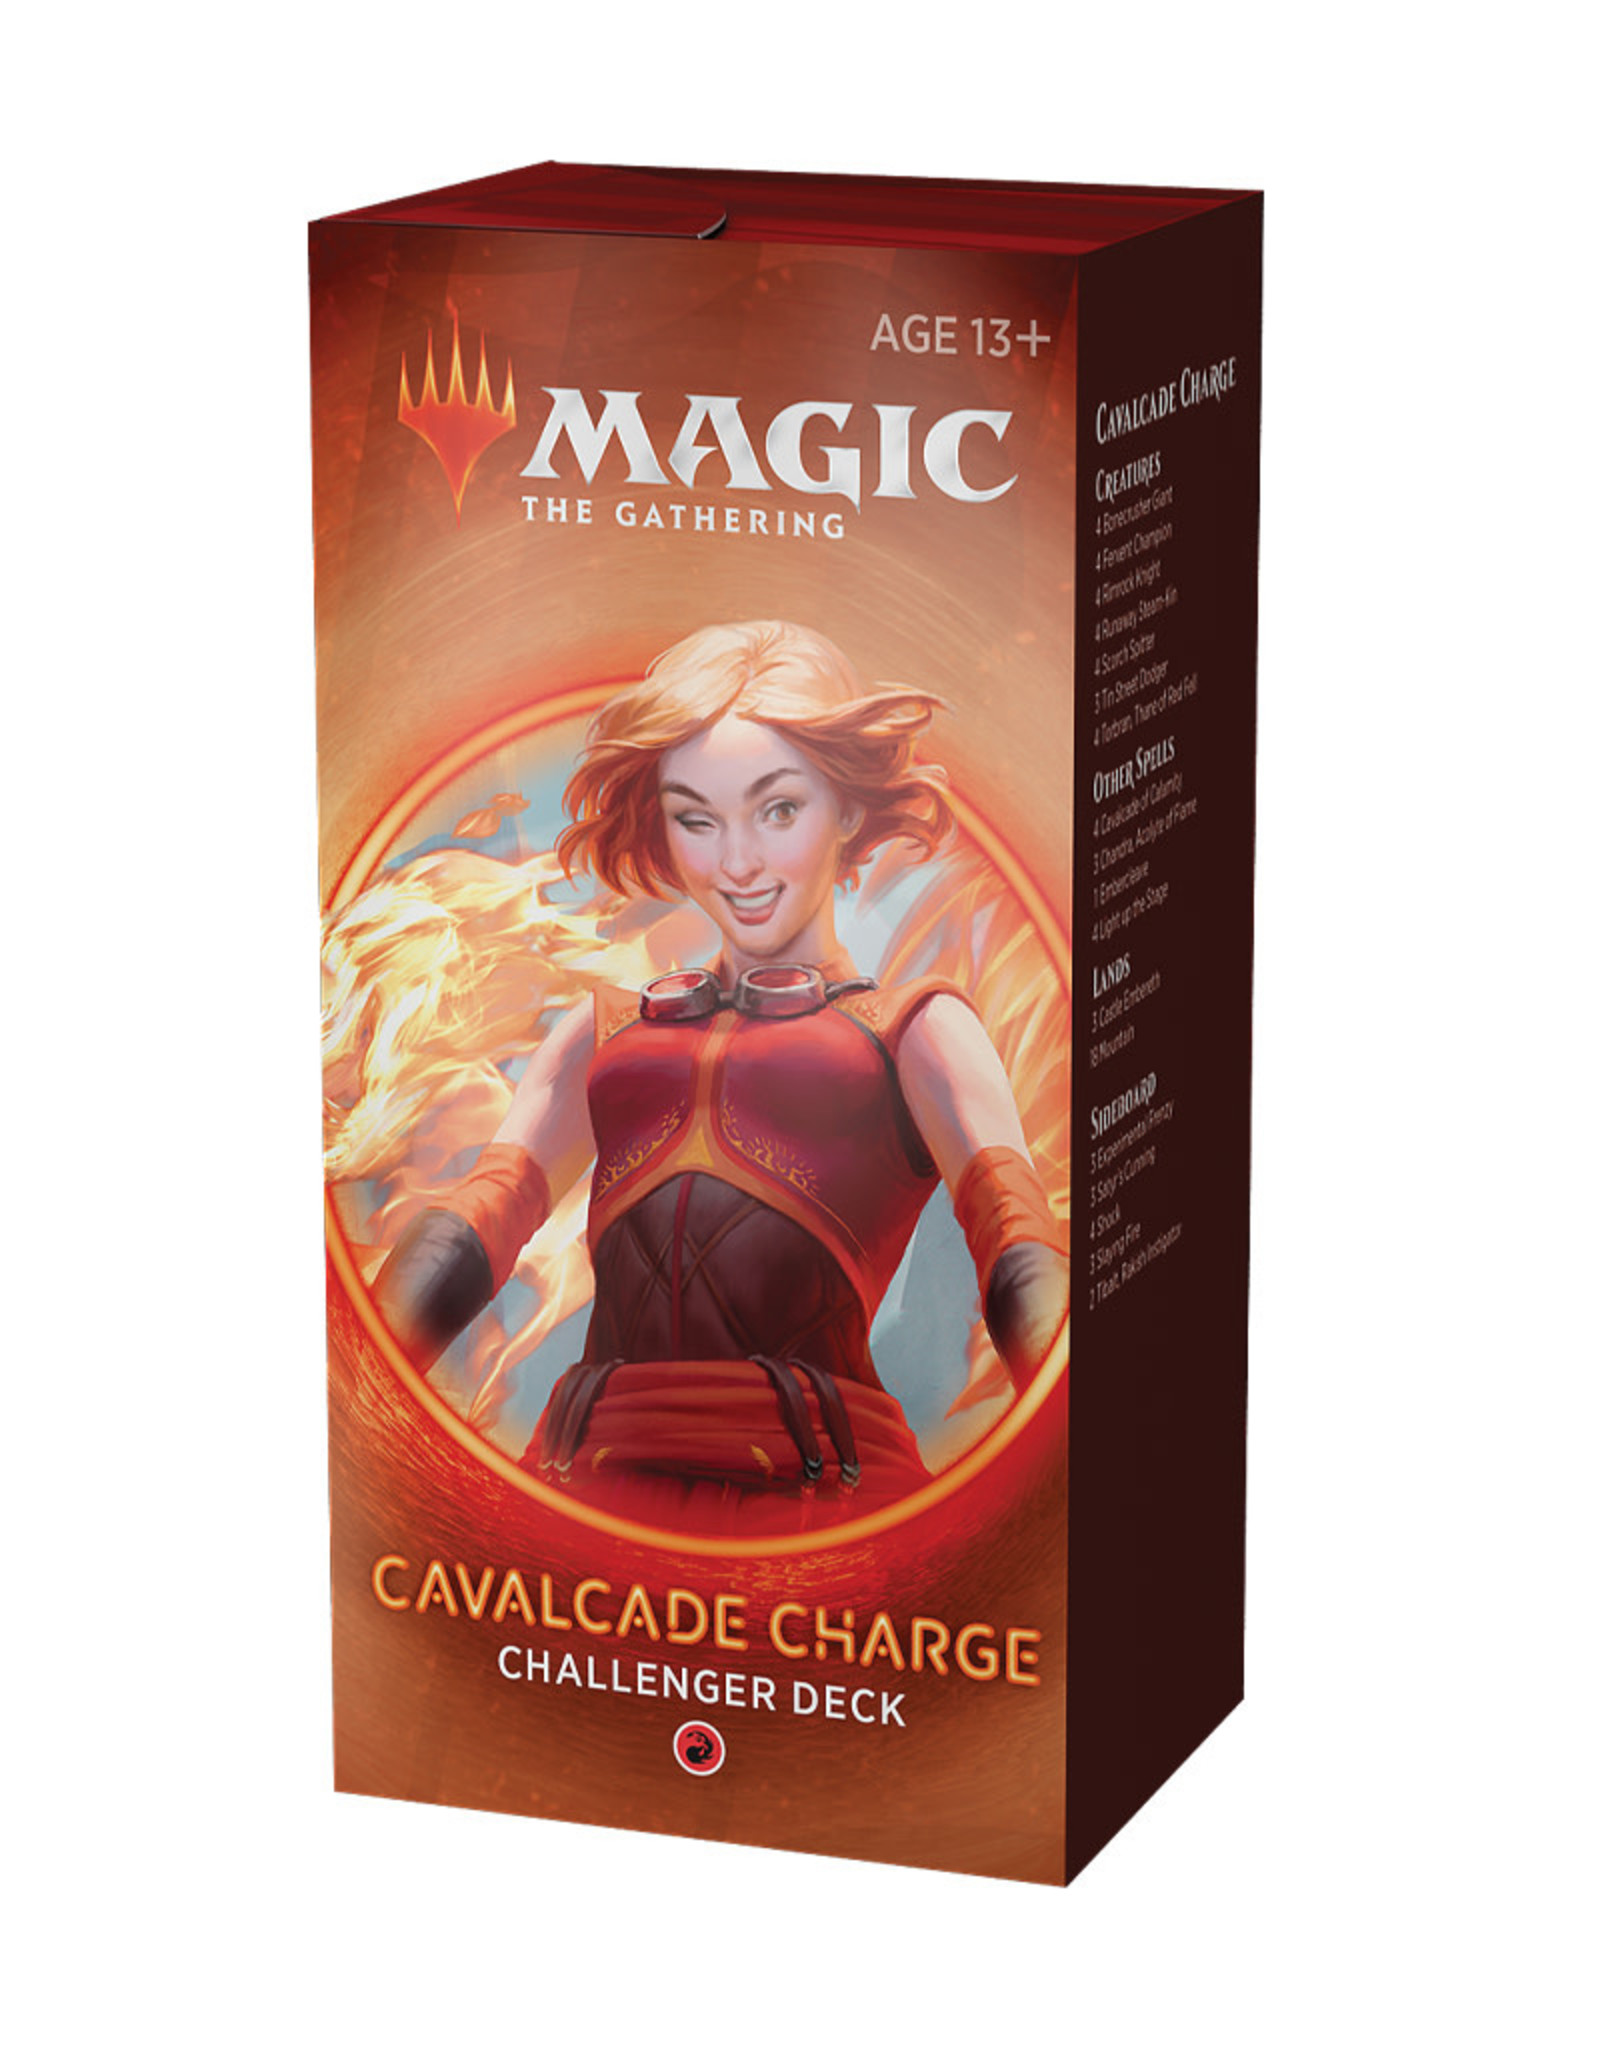 Wizards of the Coast MTG 2020 Challenger Deck (Cavalcade Charge)